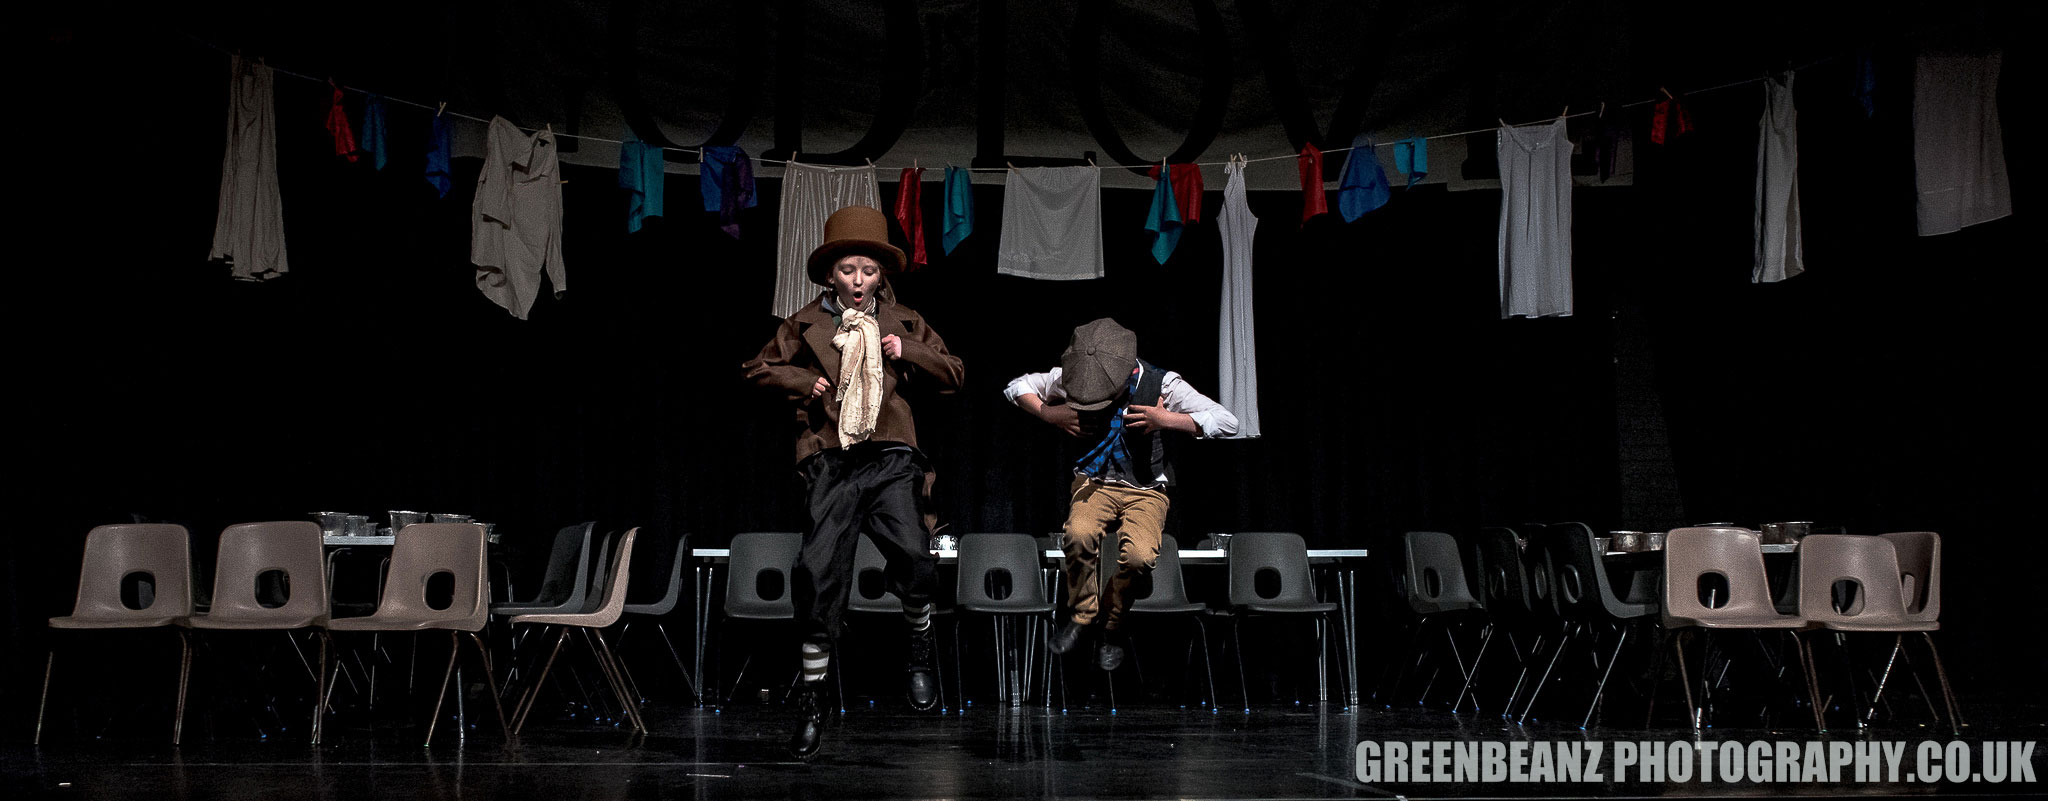 Oliver and the Artful Dodger in LS DRAMA Workshops version of the musical